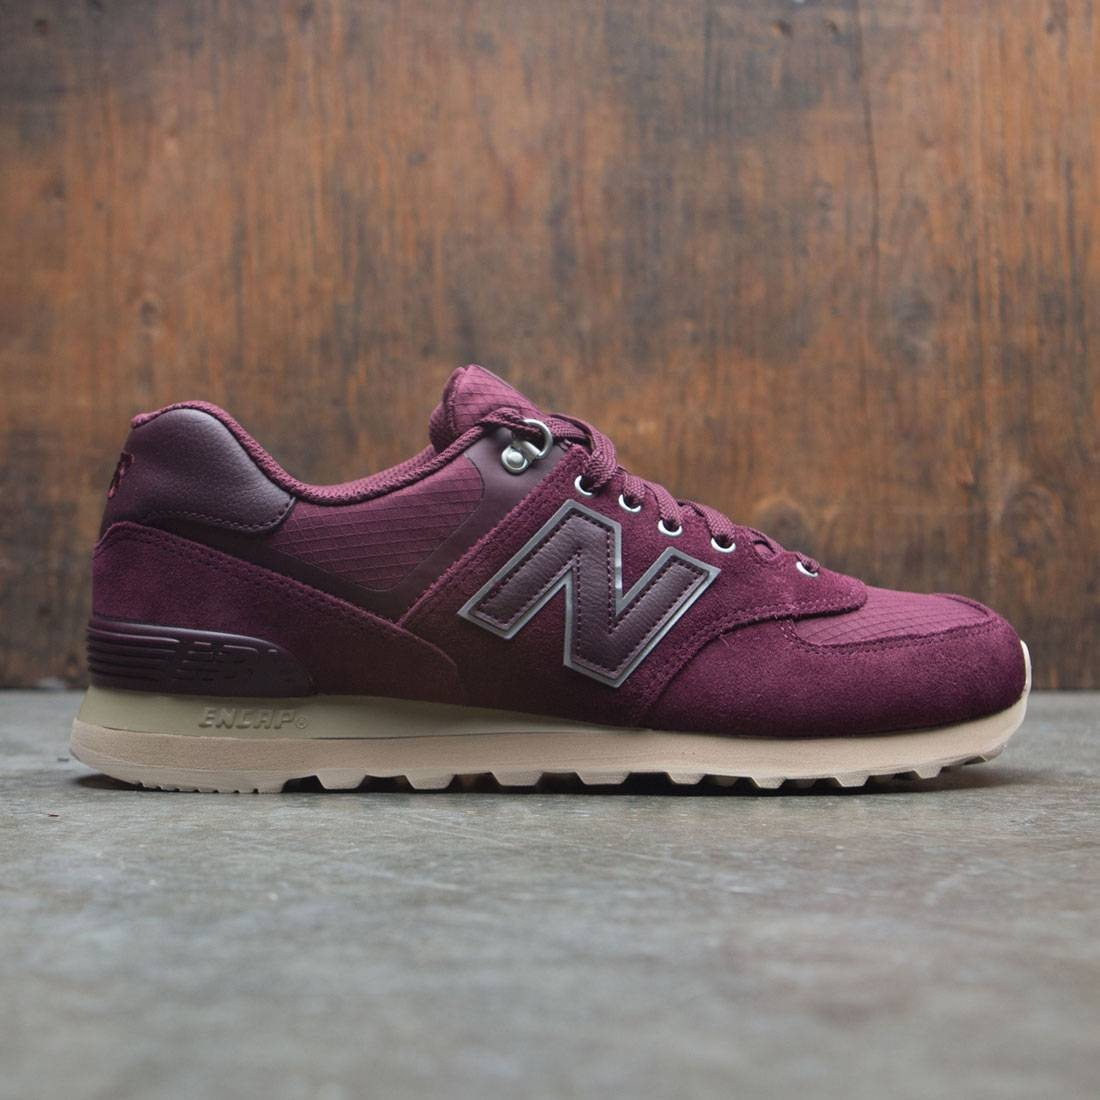 separation shoes 341f4 04519 New Balance Men 574 Outdoor Activist ML574PKS (burgundy / chocolate cherry  / sand)